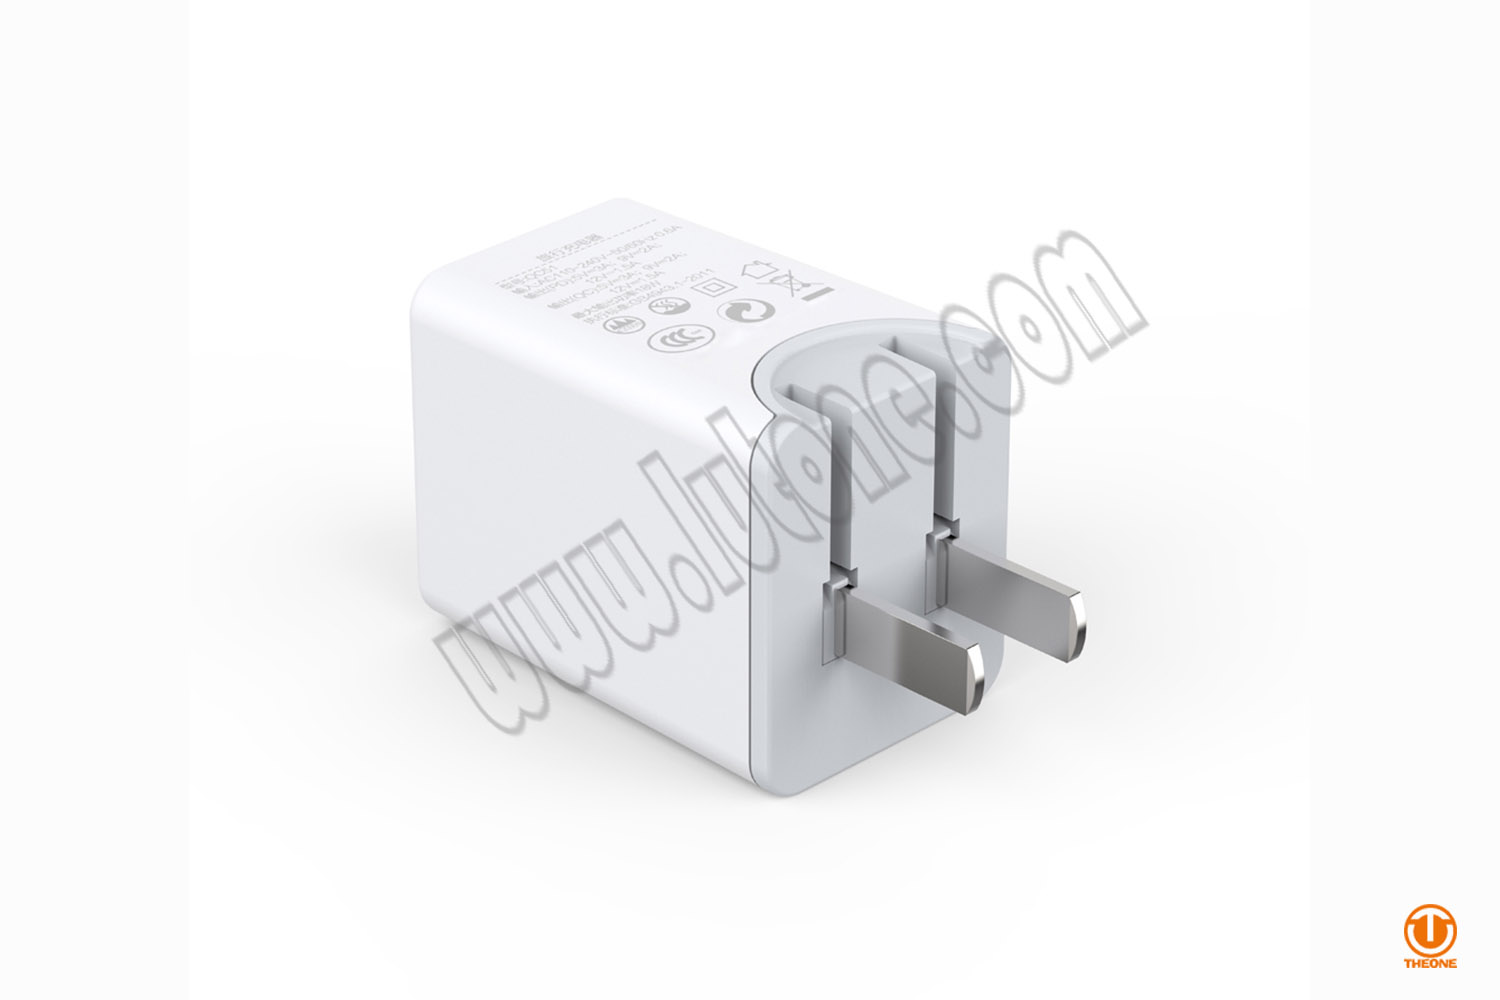 18W MINI USB Charger with PD & QC